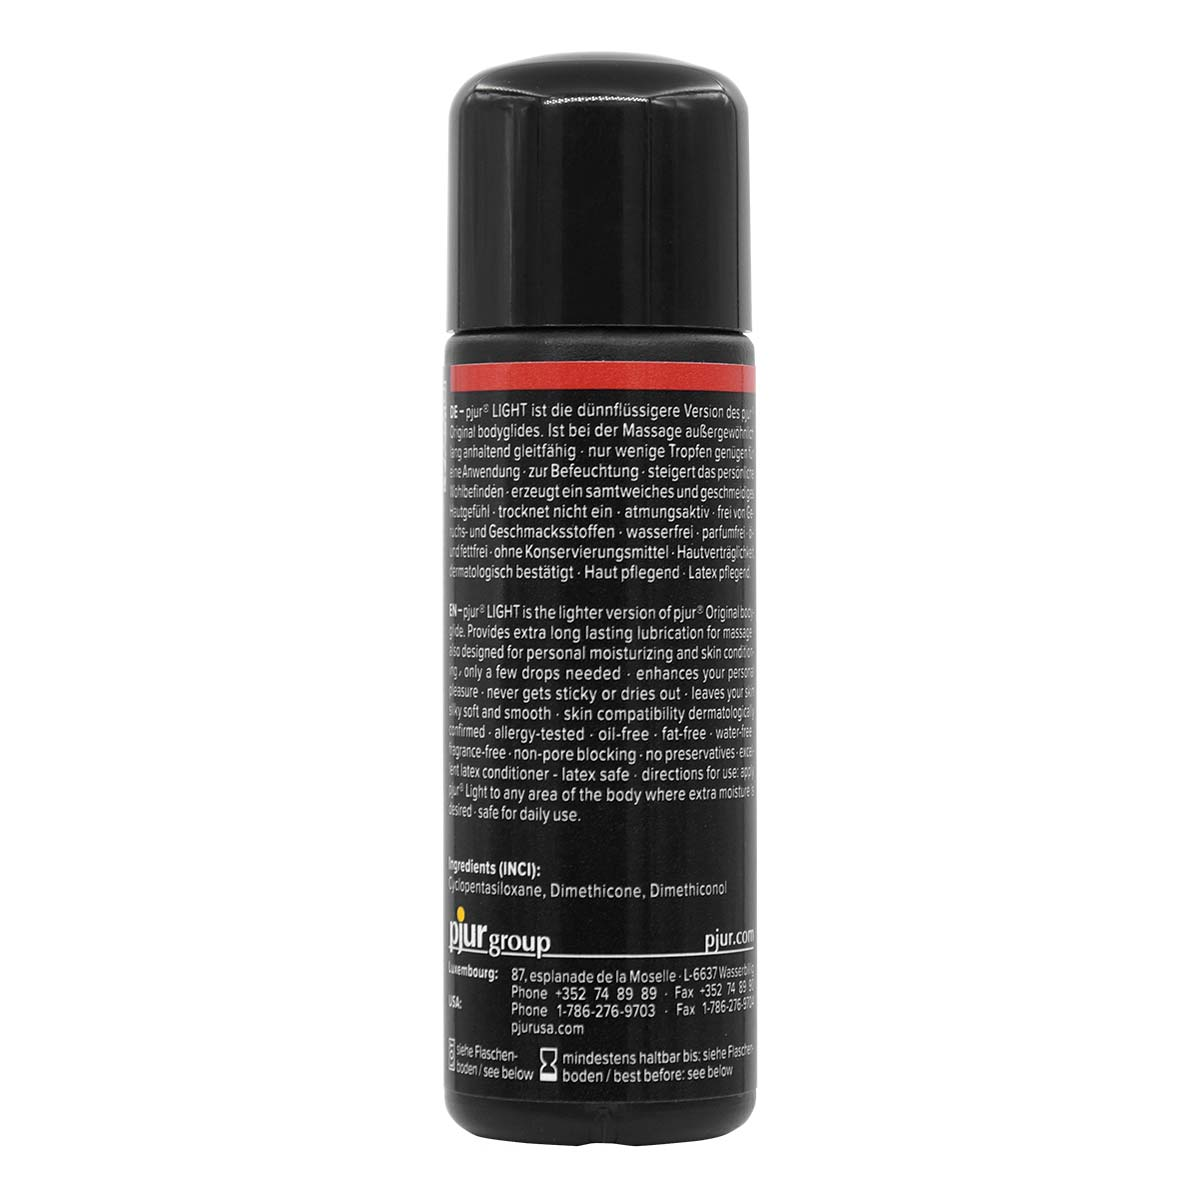 pjur LIGHT 30ml Silicone-based Lubricant